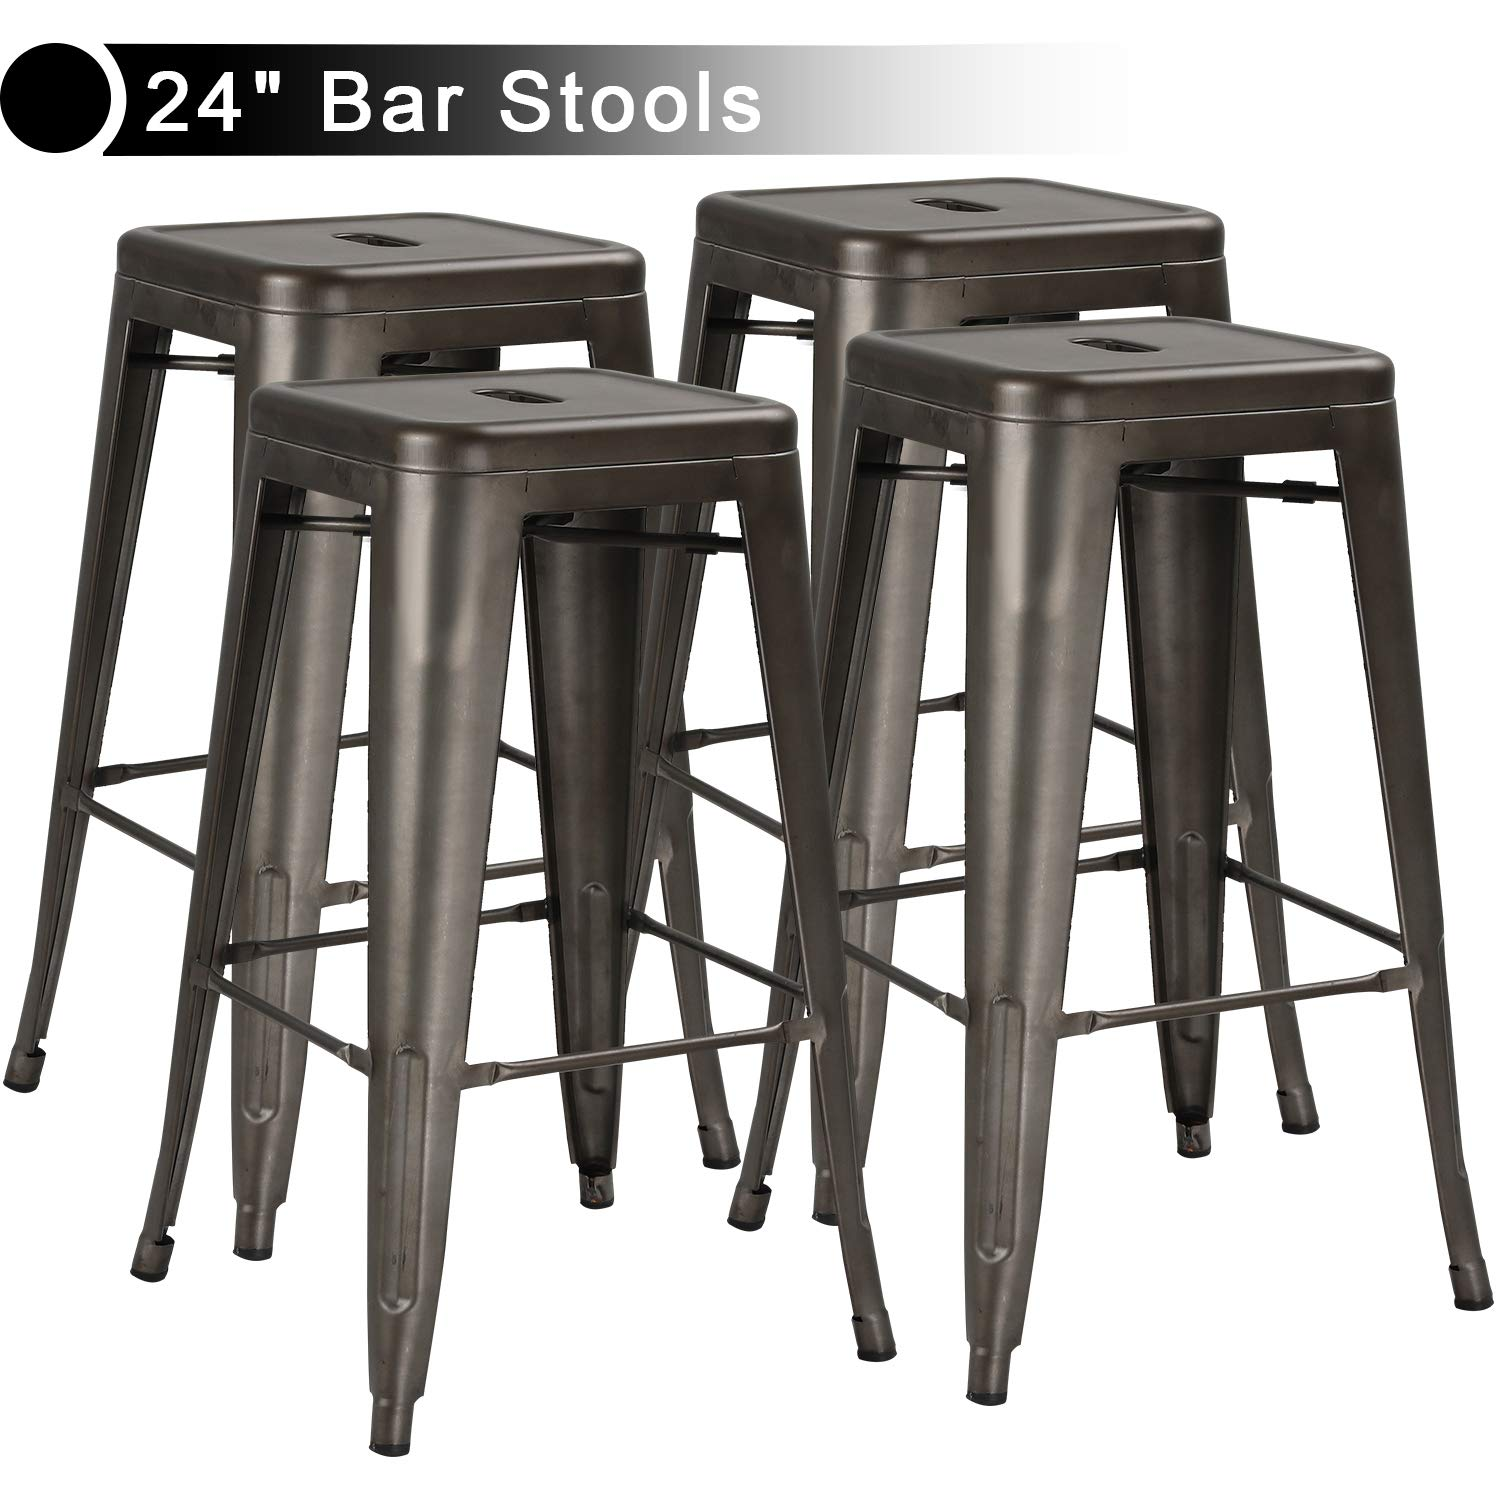 Metal Indoor-Outdoor Stools Distressed Style Kitchen Dining Stool Stackable Side Stools(24in Gun Stool)